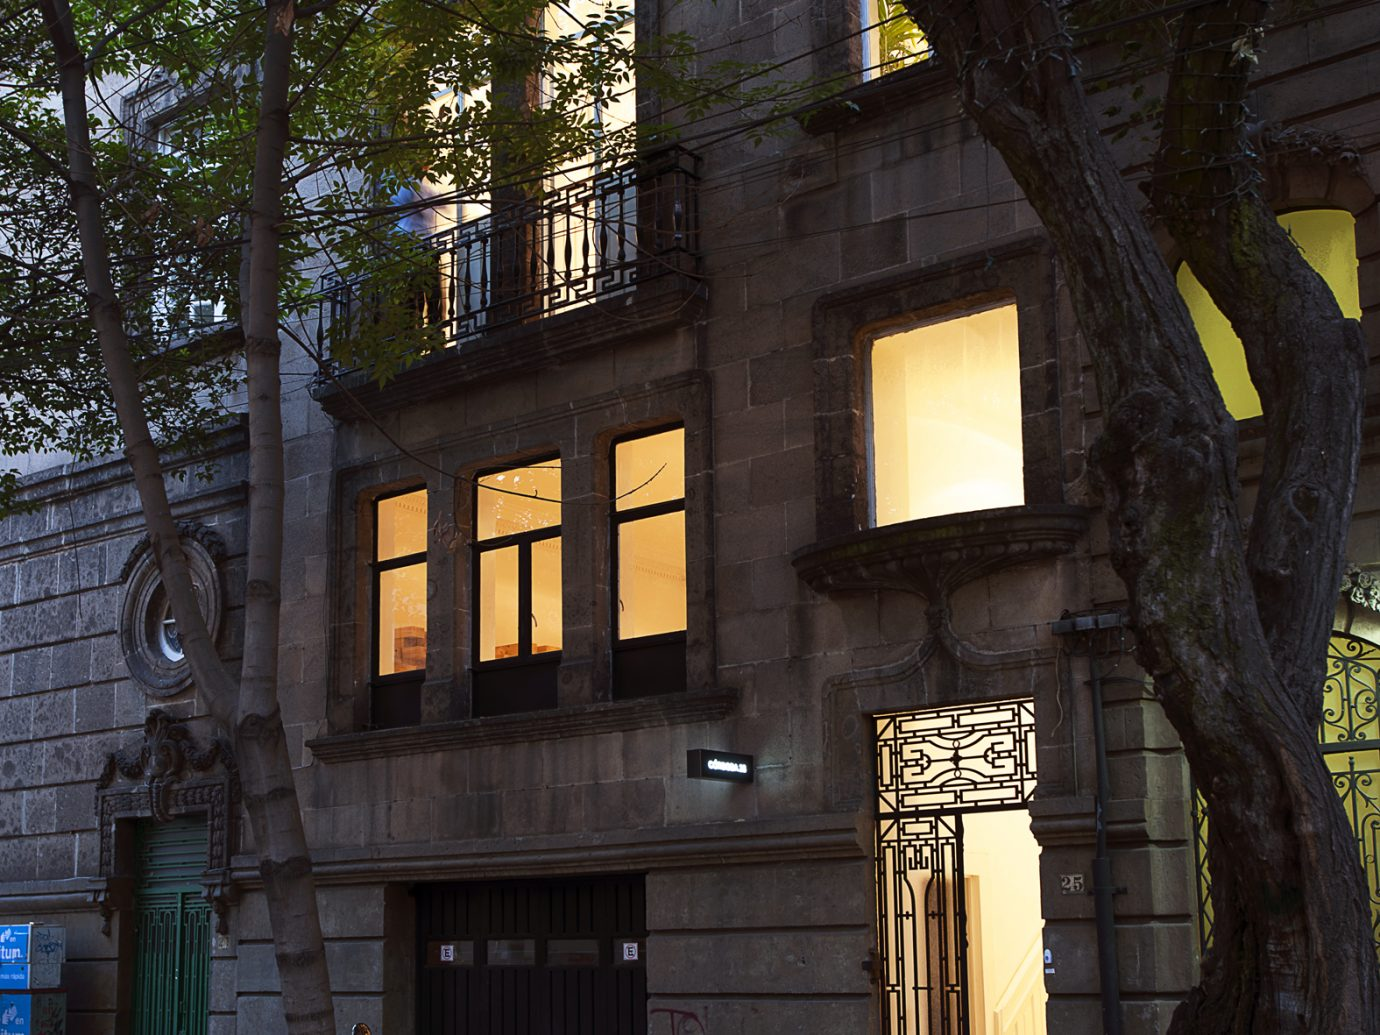 Exterior of Casa Bosques